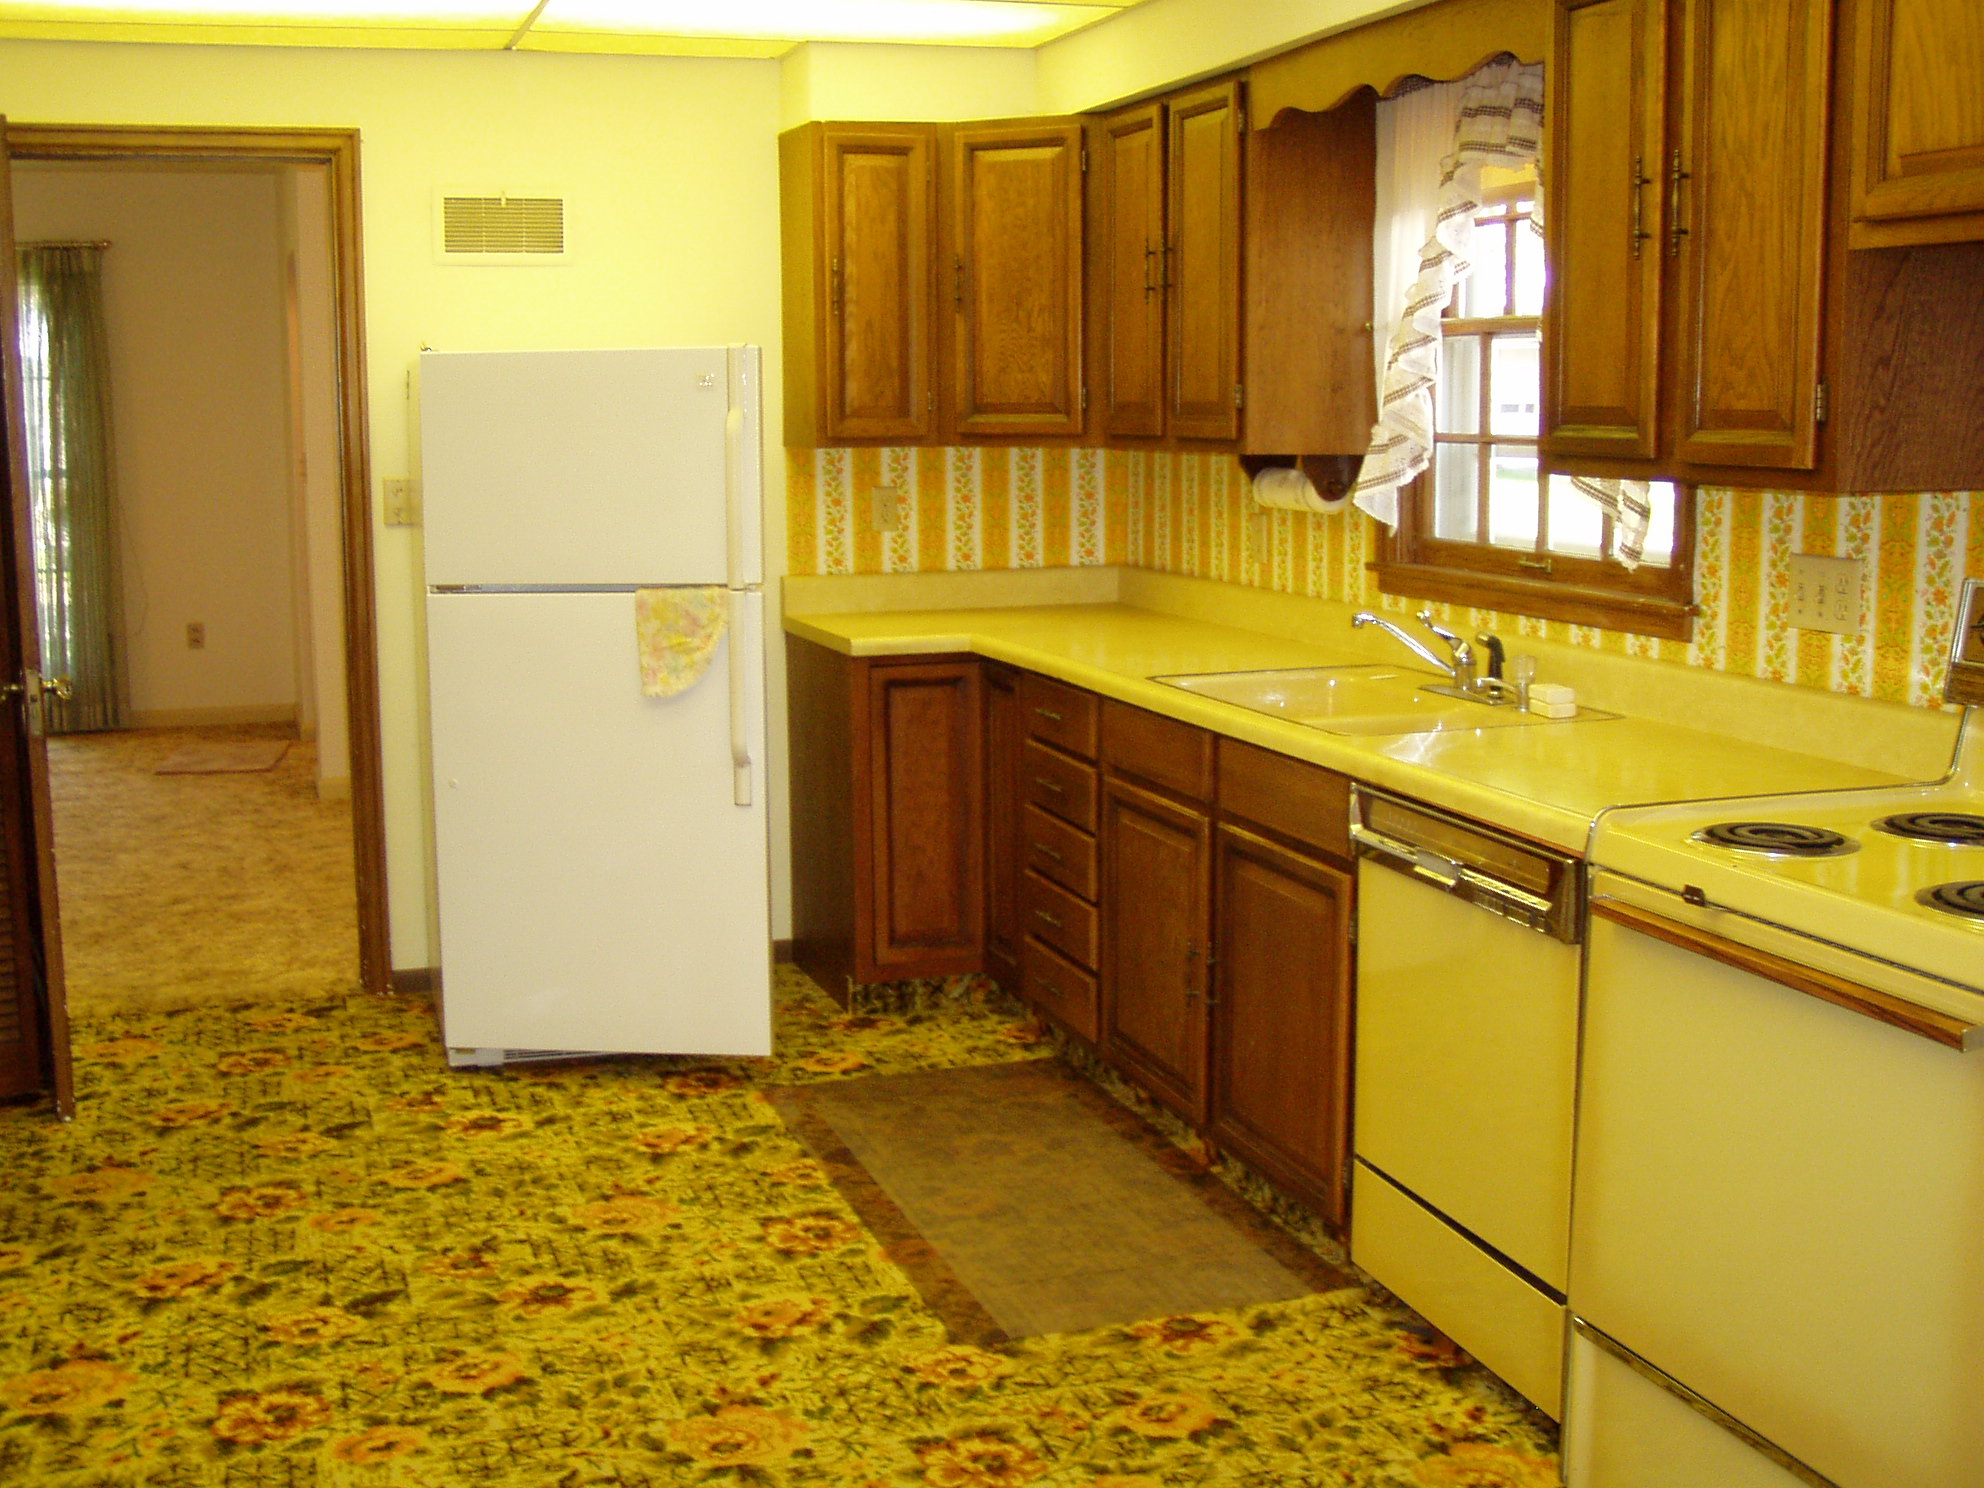 Those of us who lived through the 70s for Kitchen design 70s